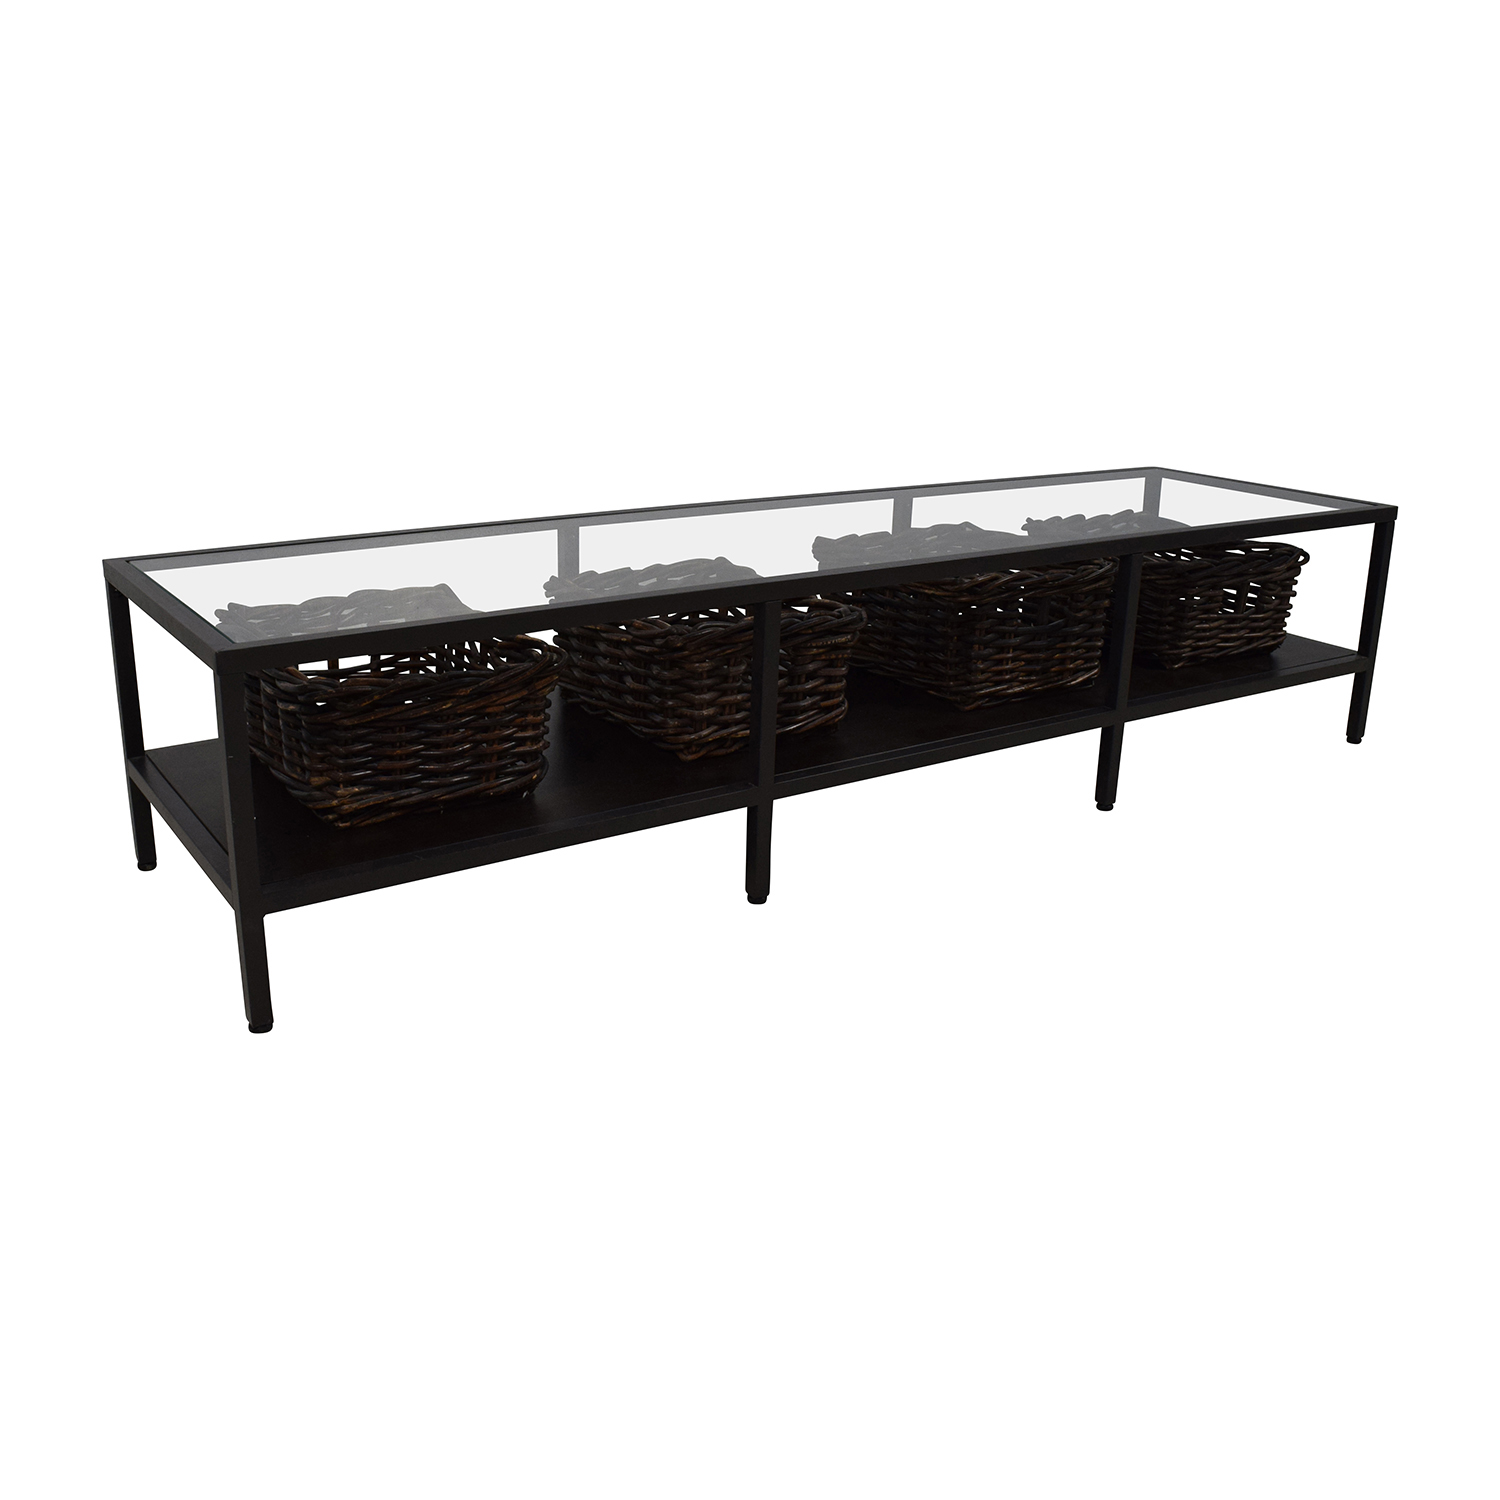 tv stand ikea black. ikea modern low glass tv stand with wicker storage bins used tv ikea black